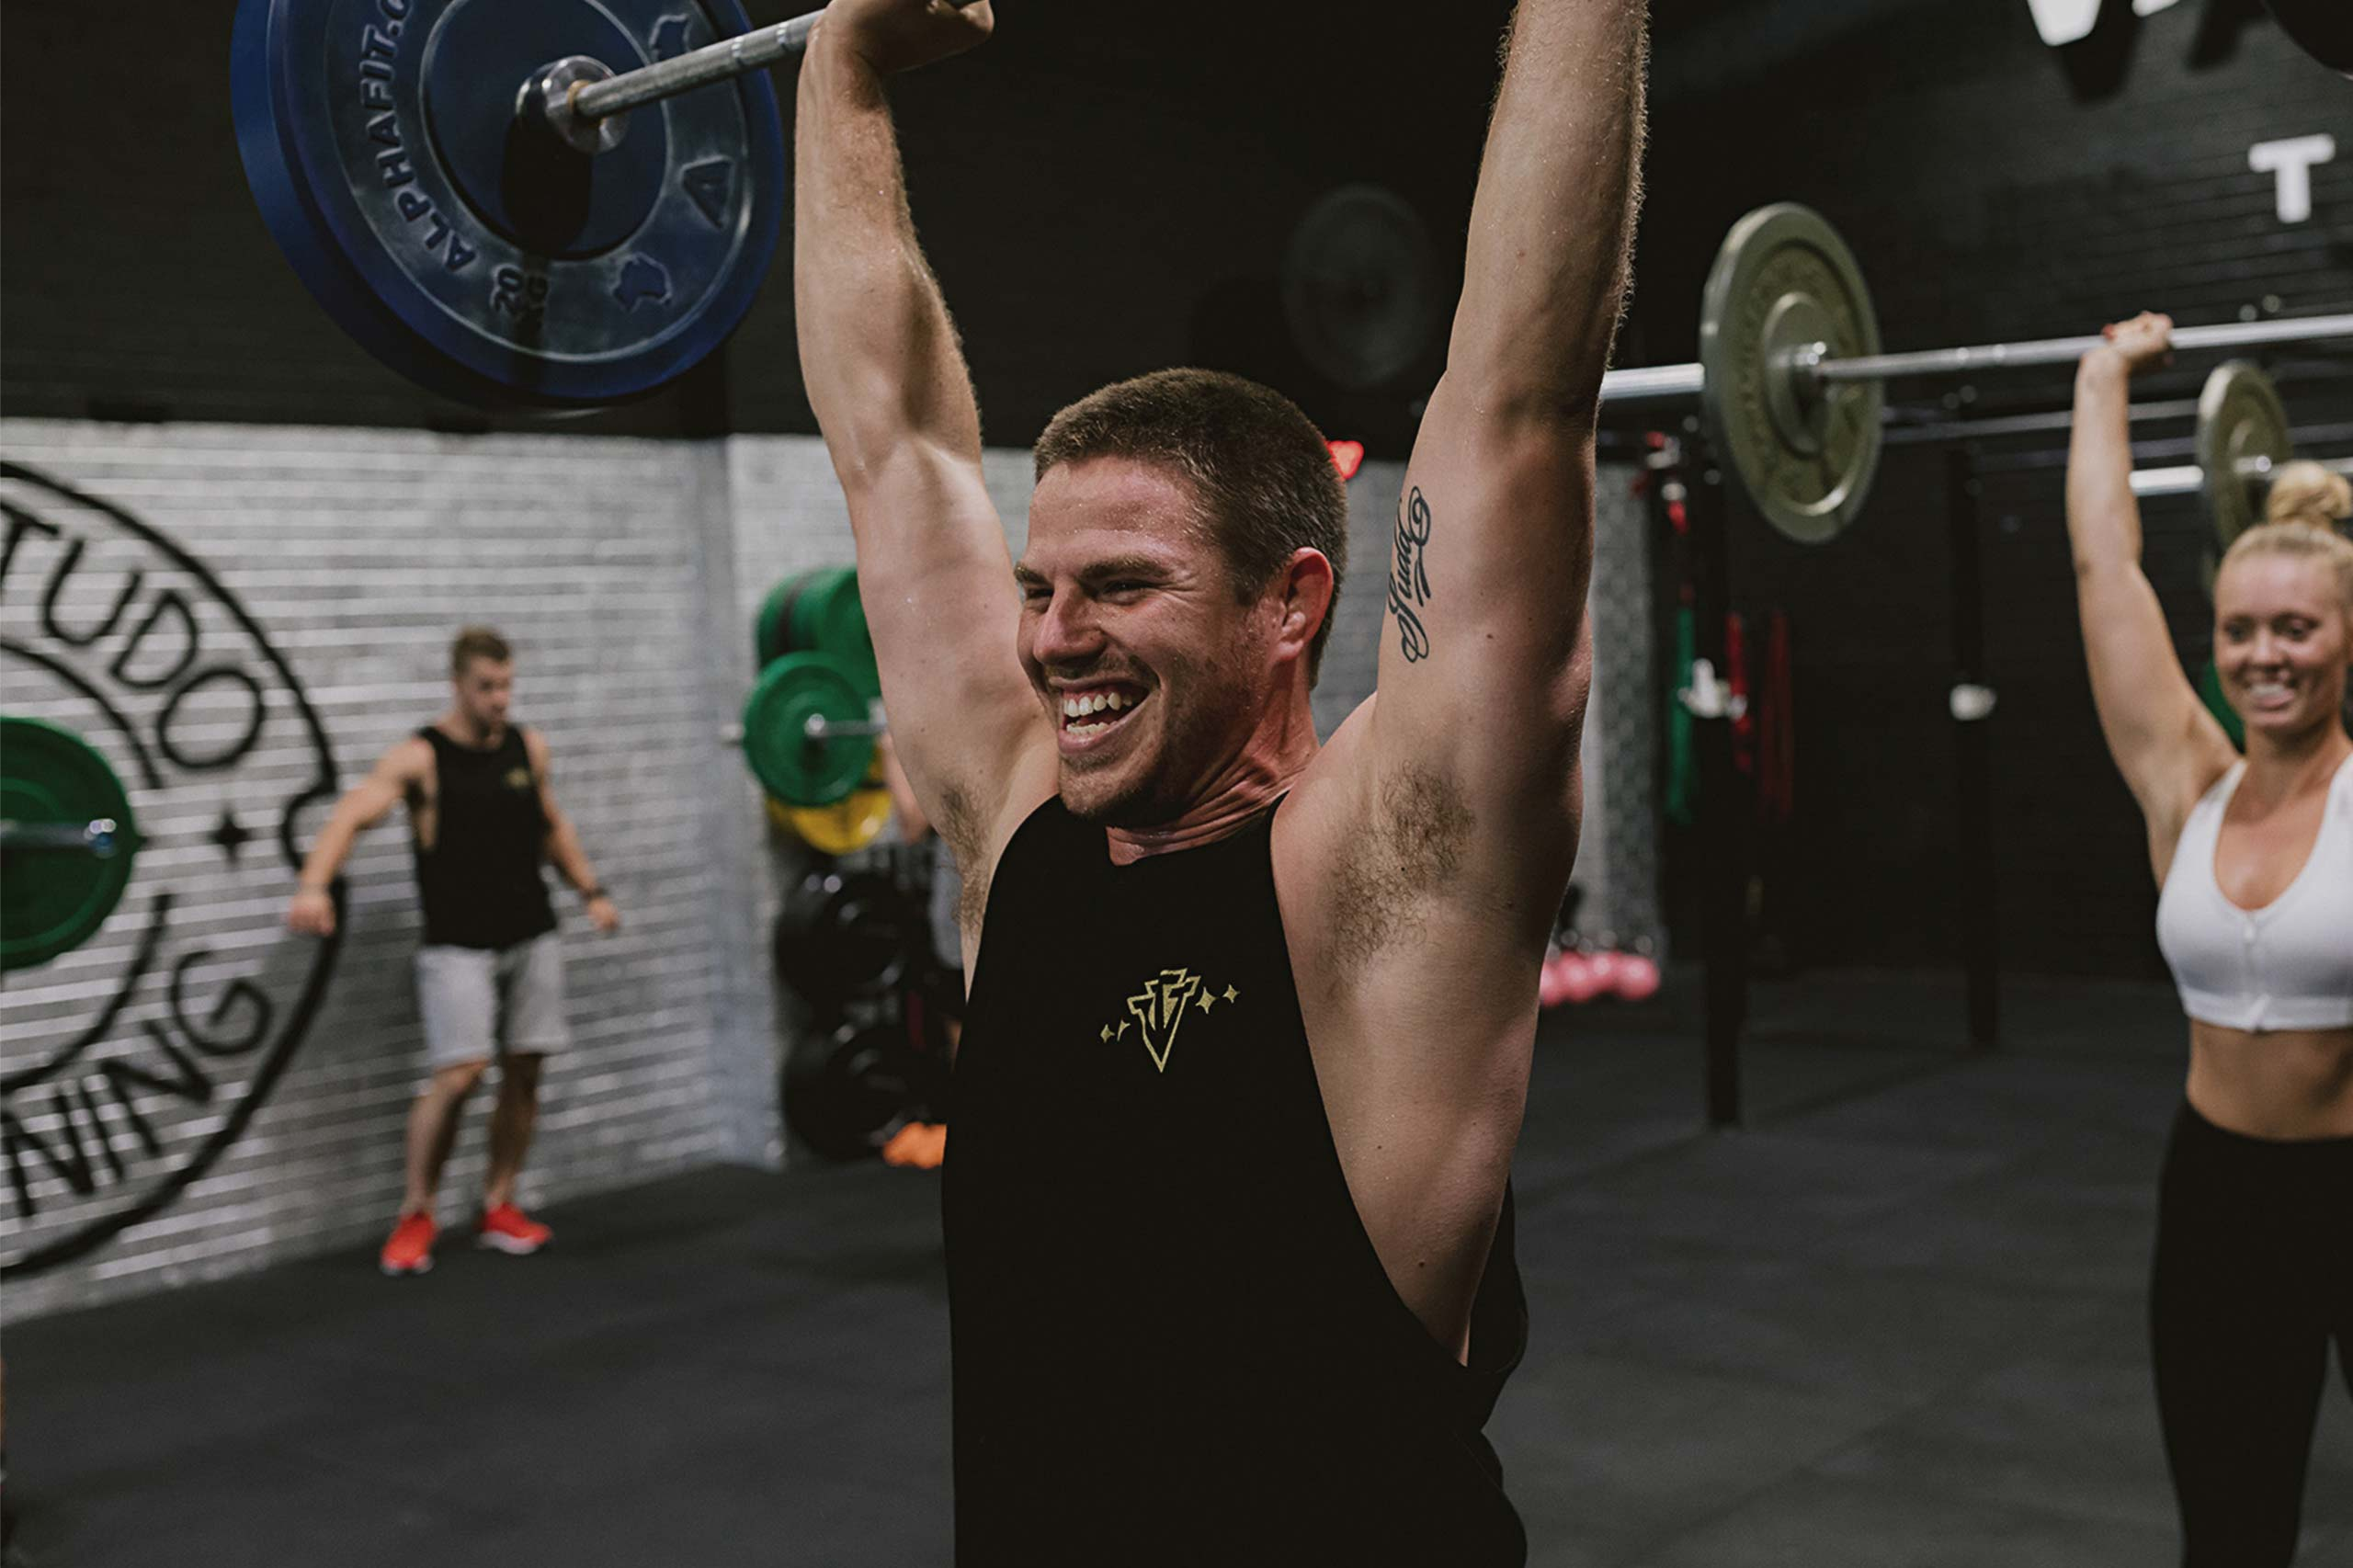 man lifting barbell weights over head